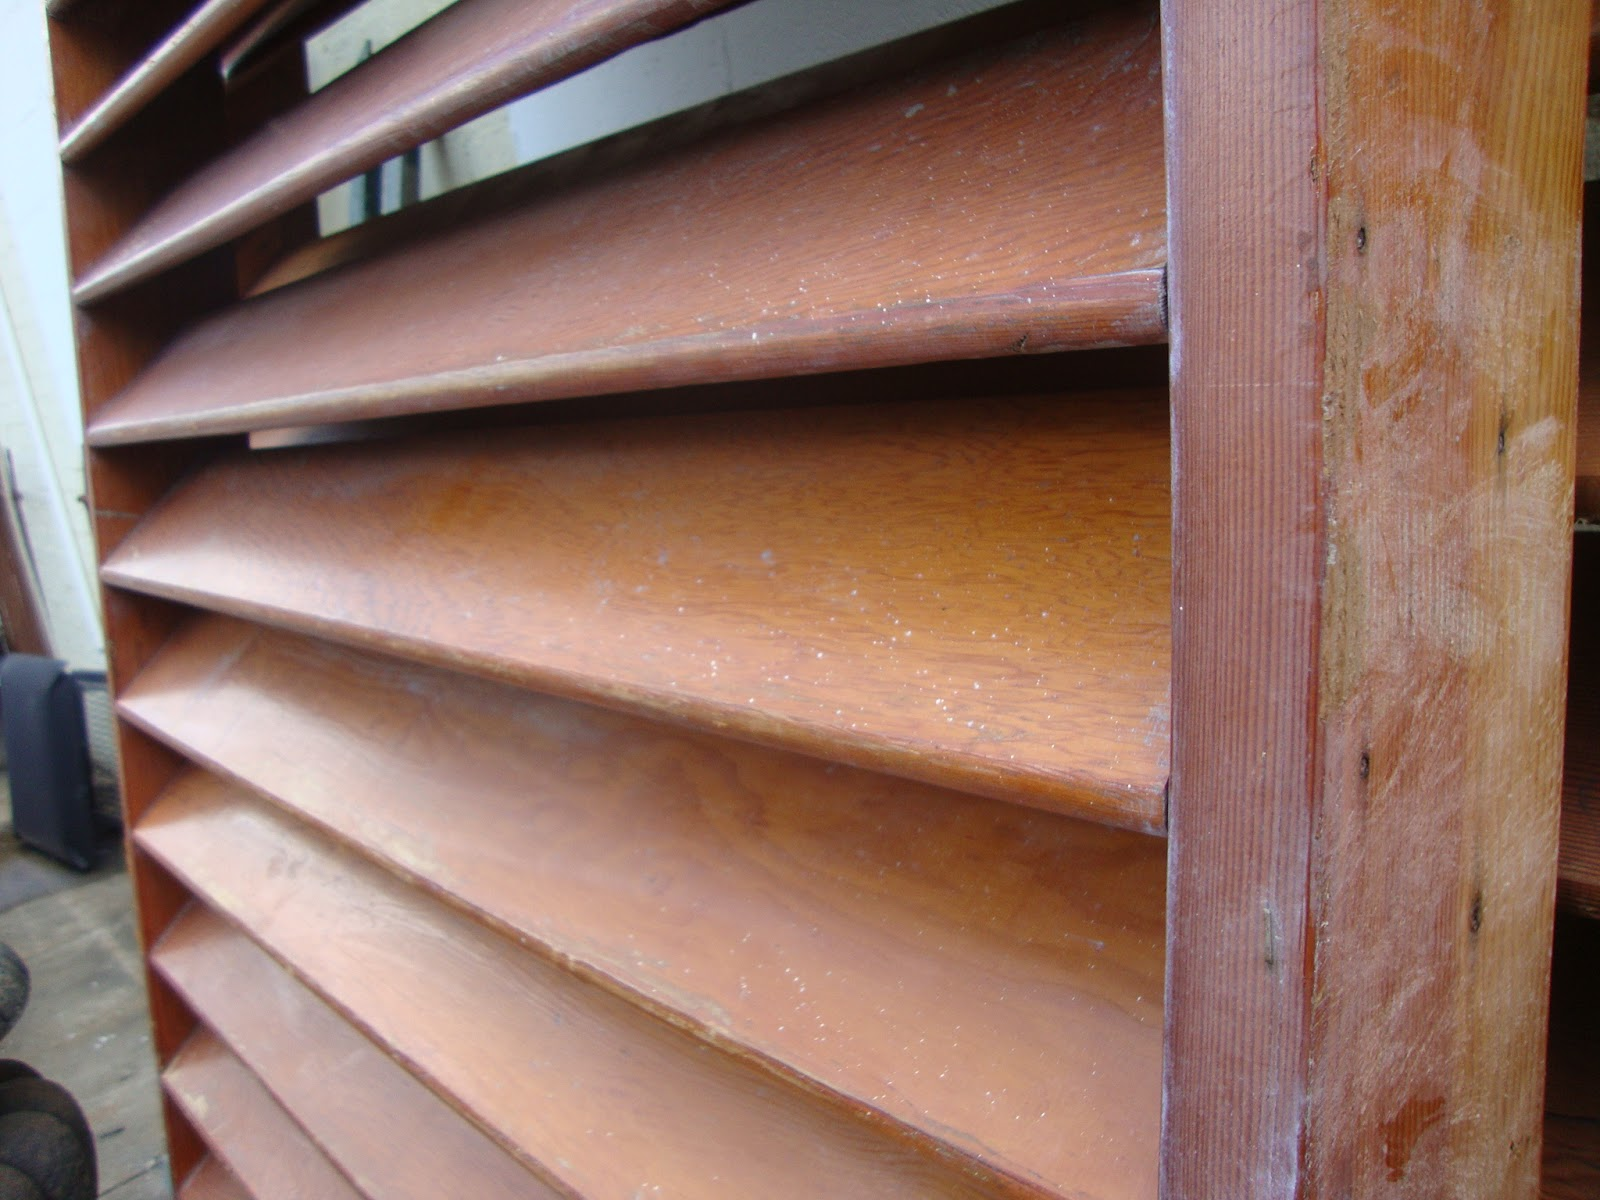 #91623A Black Dog Salvage Architectural Antiques & Custom  Recommended 7067 Wall Louvers Vents pics with 1600x1200 px on helpvideos.info - Air Conditioners, Air Coolers and more